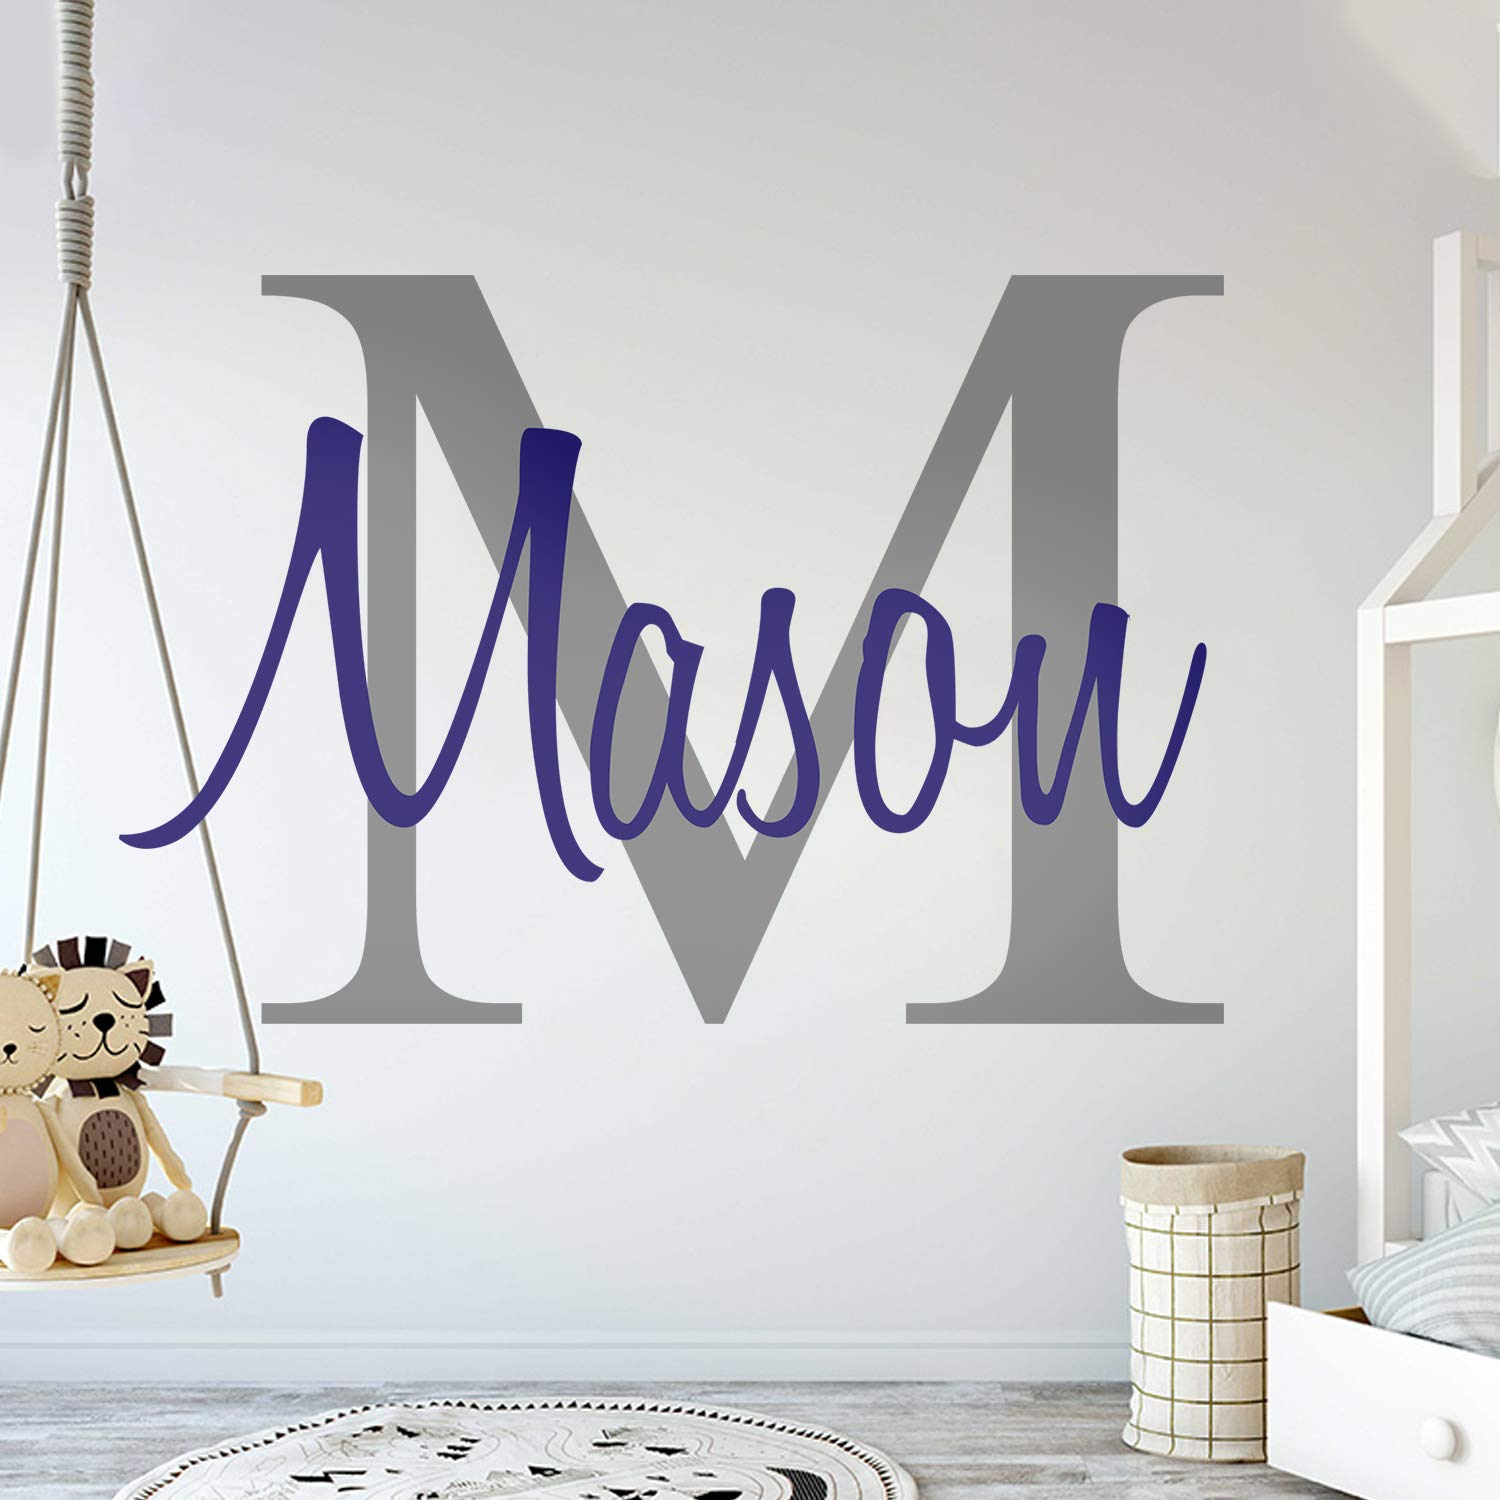 Custom Name & Initial - Premium Series - Baby Boy - Wall Decal Nursery for Home Bedroom Children (M511) (Wide 40'' x 26'' Height) by cryptonite